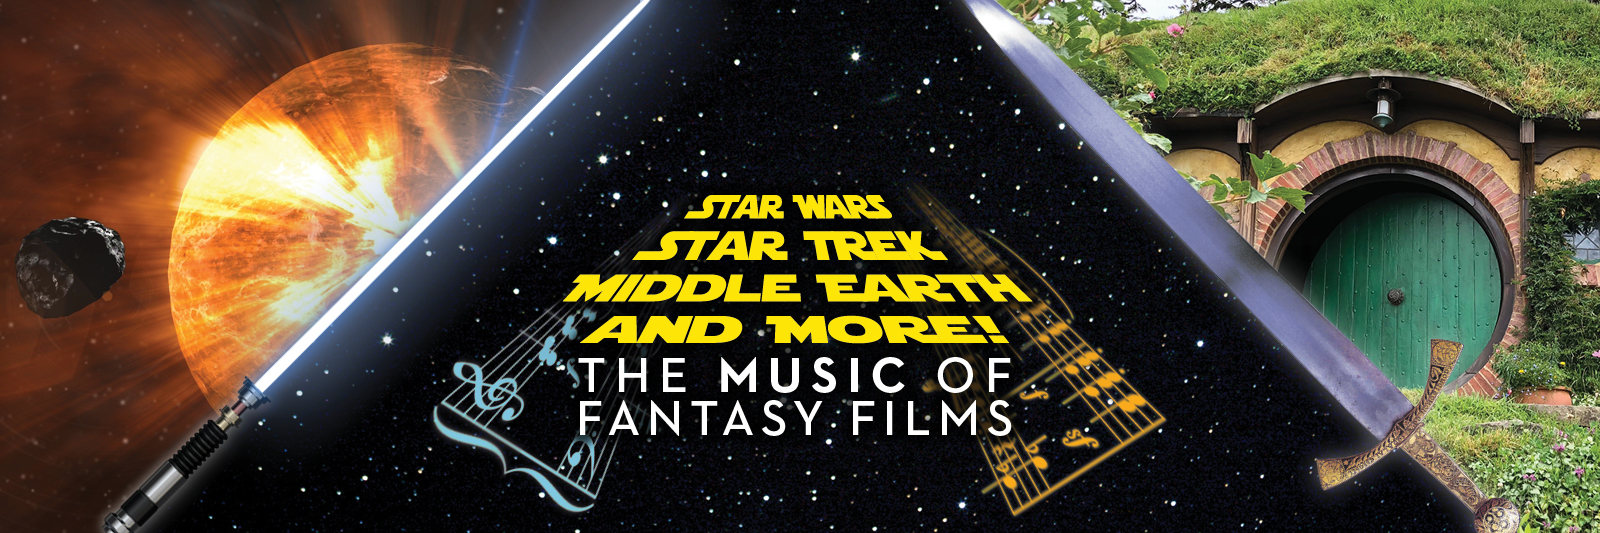 Star Wars, Star Trek, Middle Earth and More